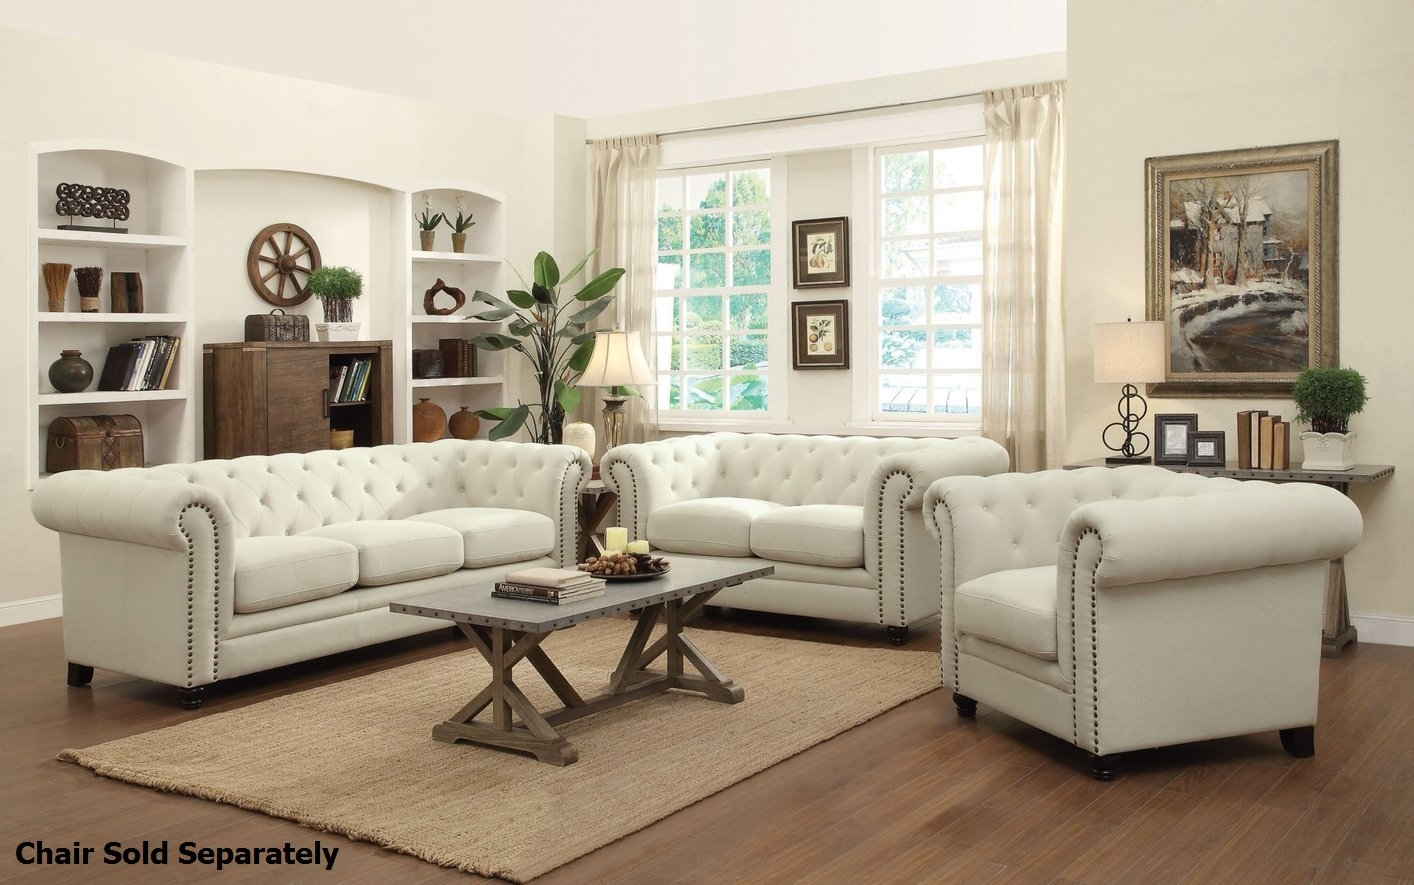 Coaster Roy 504554 504555 Beige Fabric Sofa And Loveseat Set Within Sofa Loveseat And Chairs (View 1 of 15)